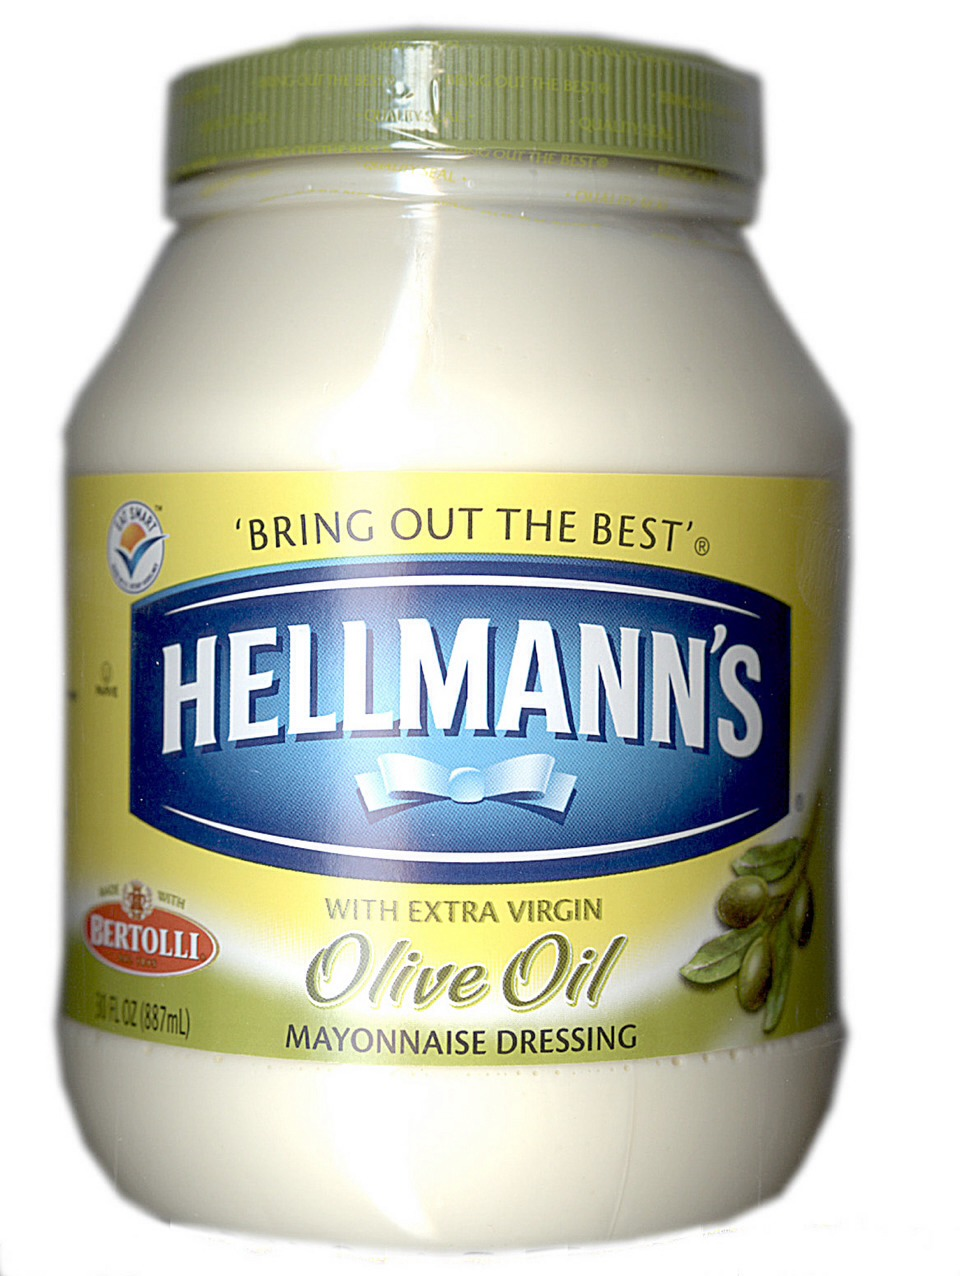 Rub mayonnaise on to the water stain!